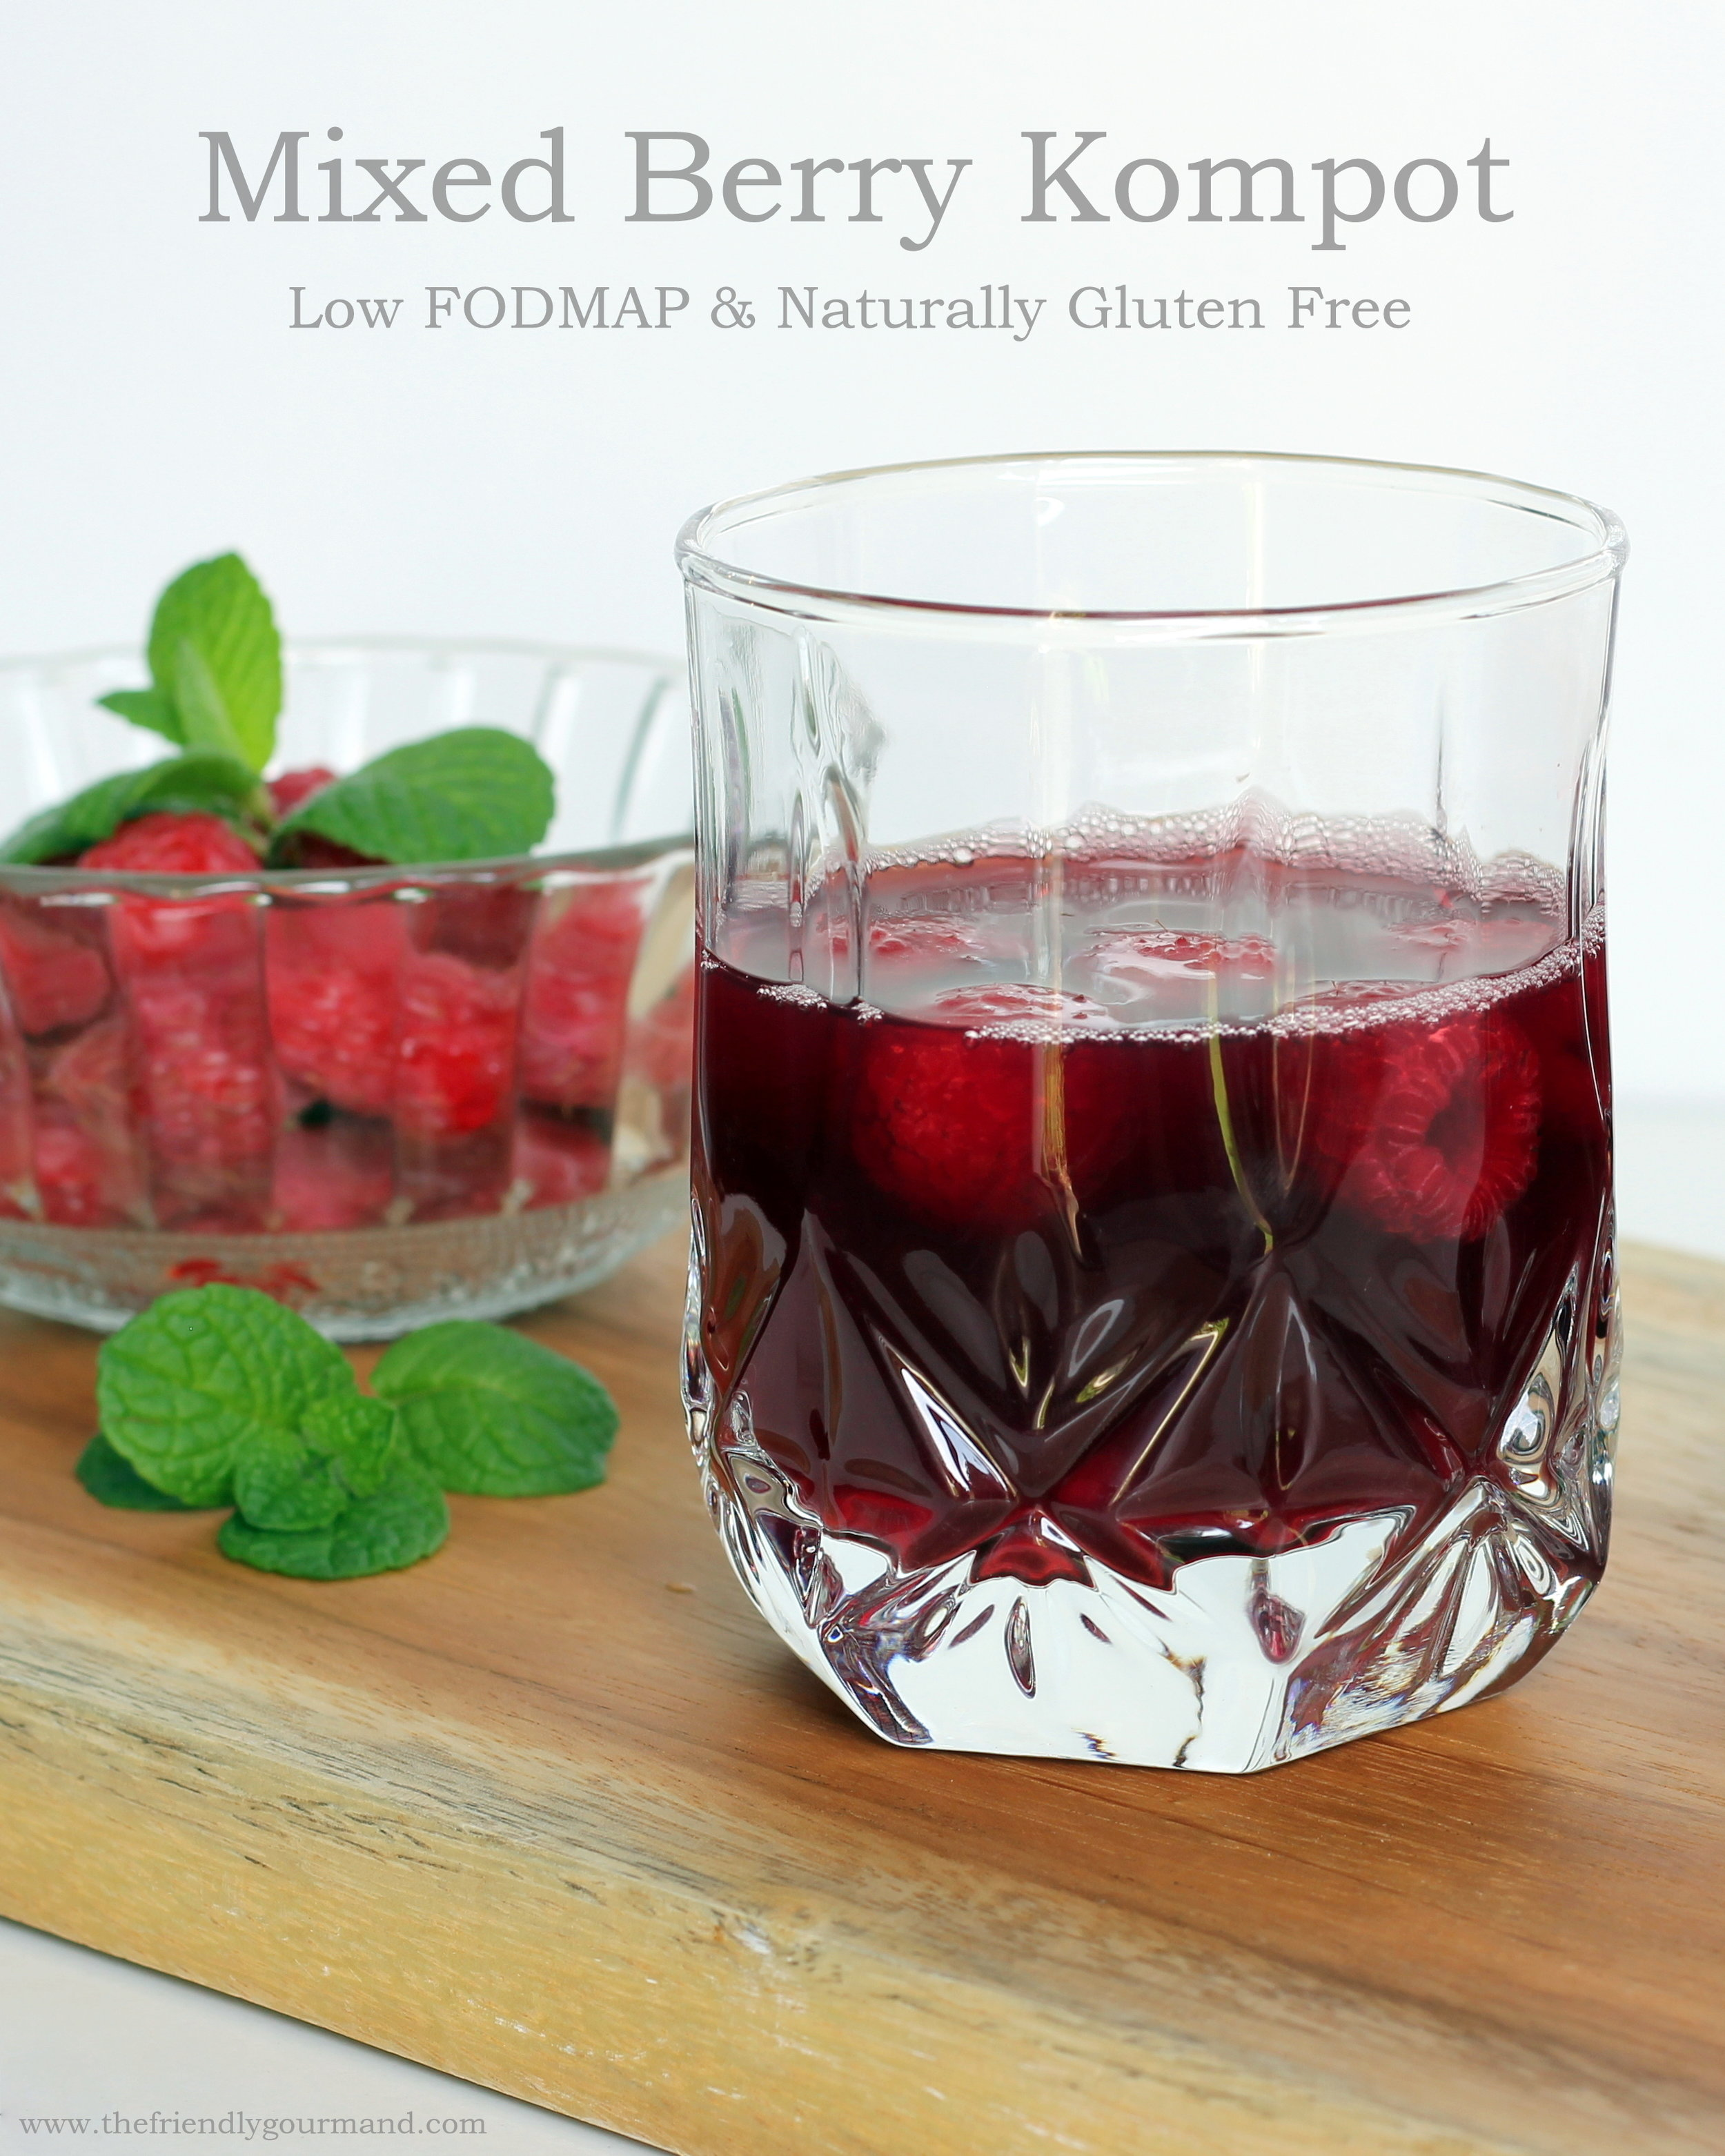 Mixed-Berry-Kompot-Low-FODMAP-Friendly-Gluten-Free-Vegan.JPG